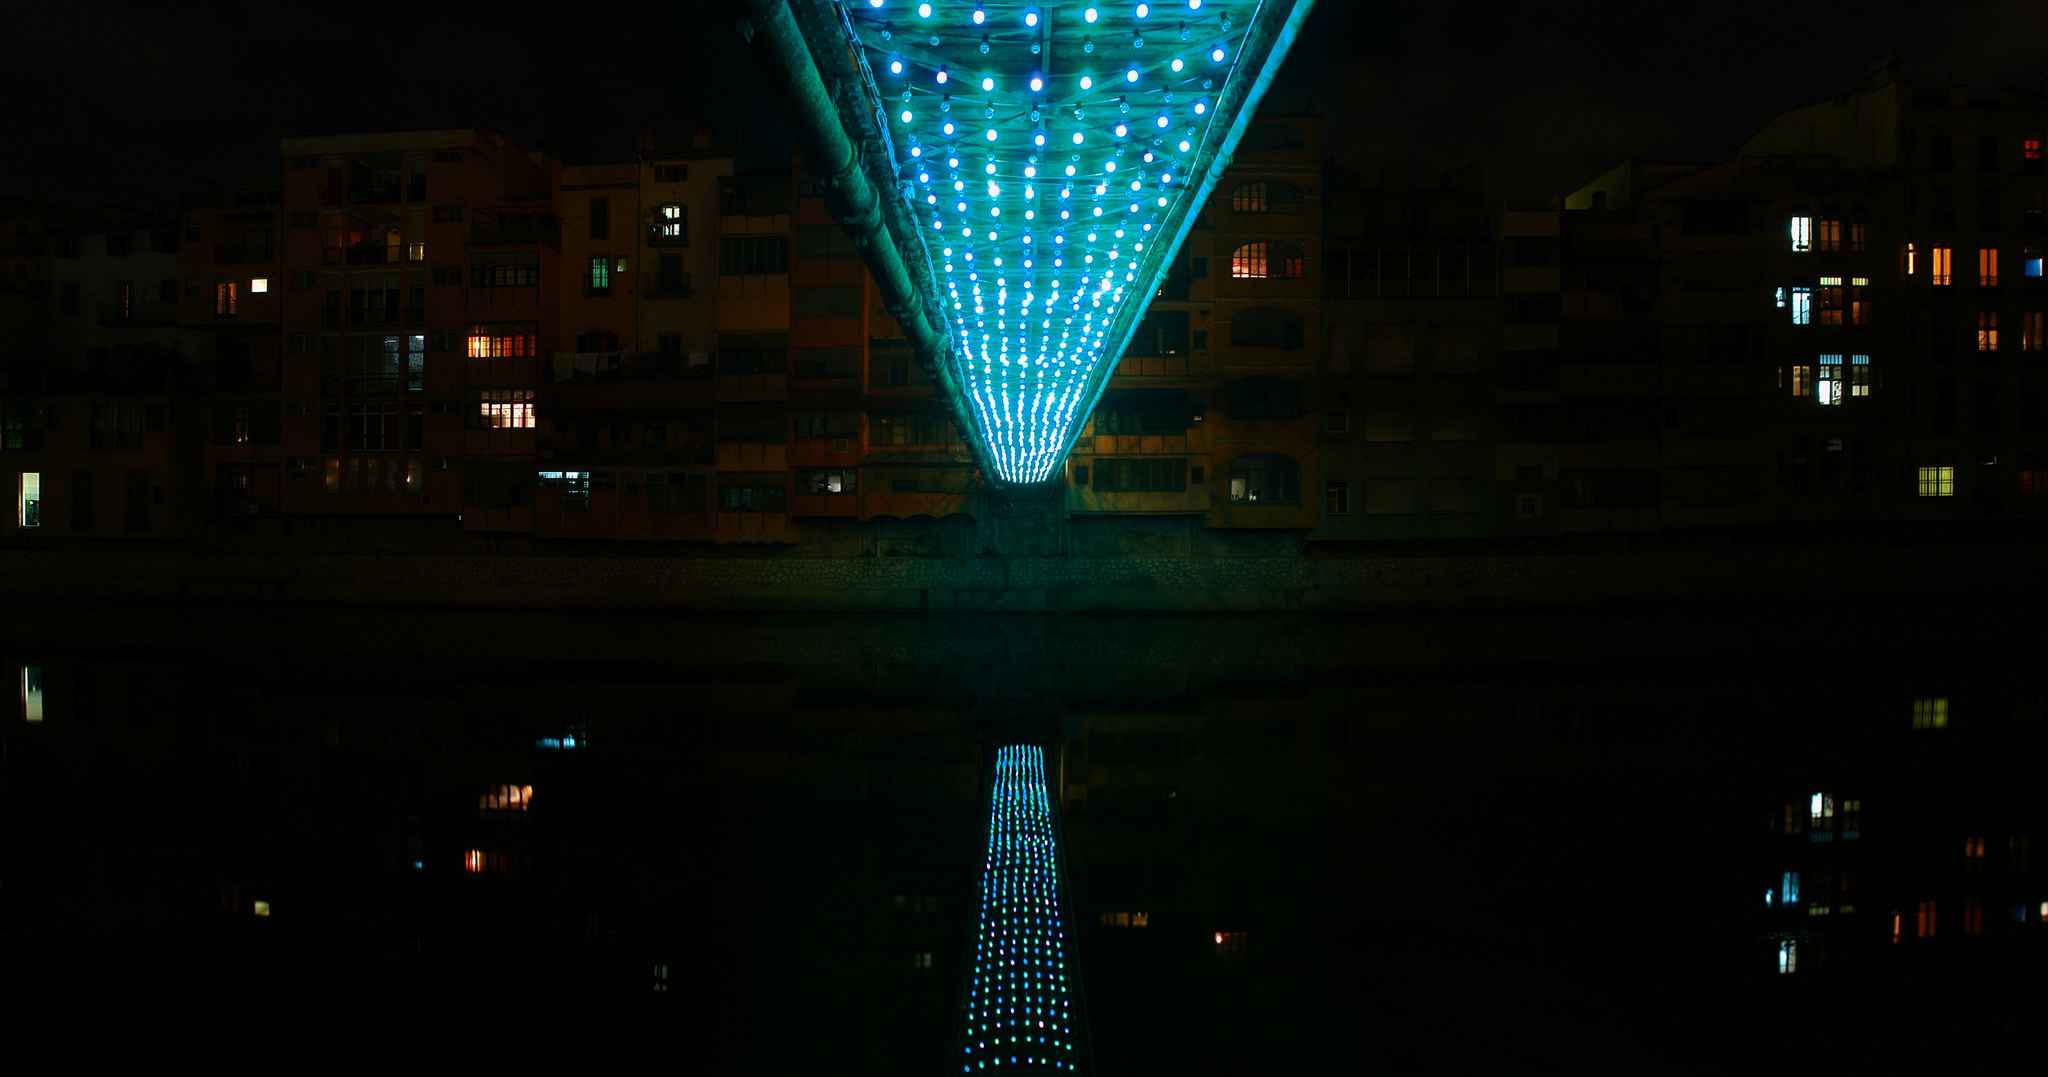 light bridge - temporary installation at Peixateries Velles bridge in Girona